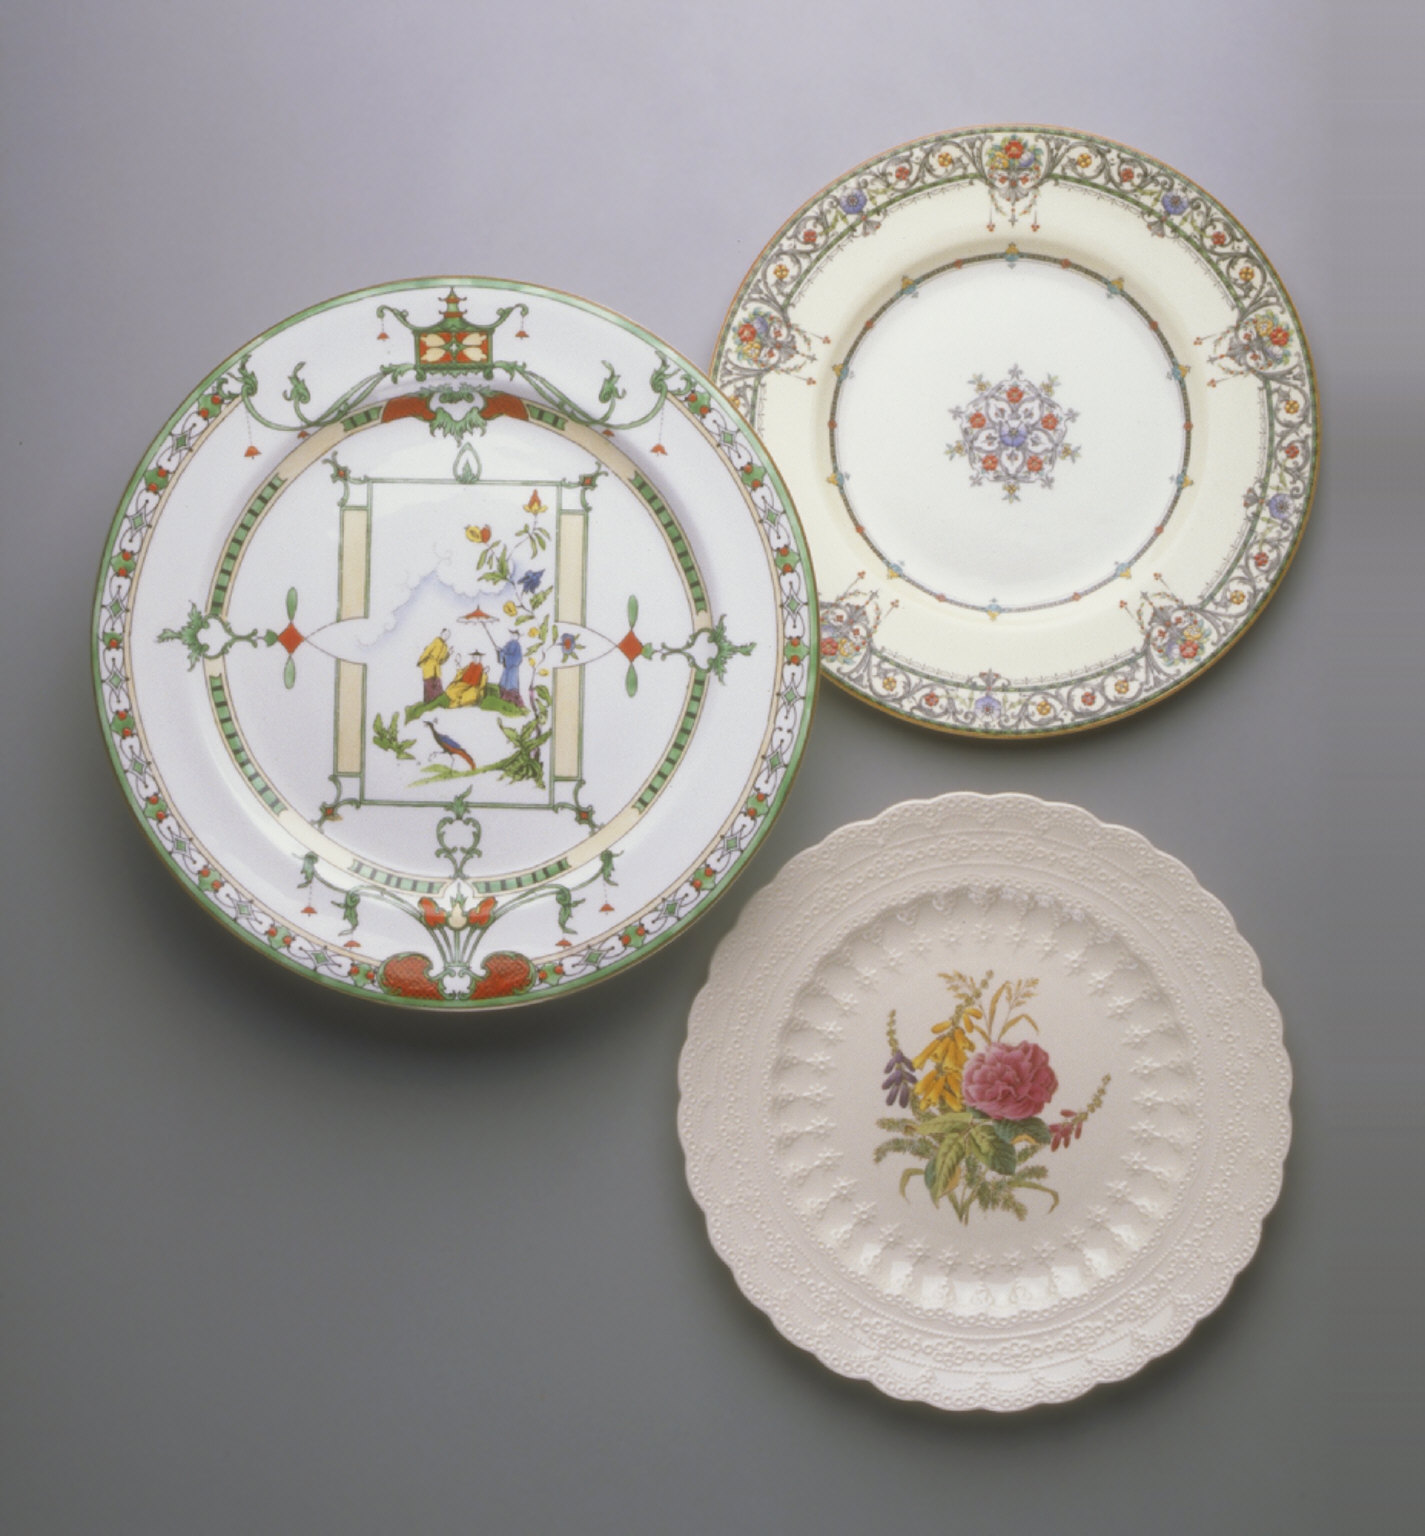 'Prince' shape plate with 'Chantilly' pattern